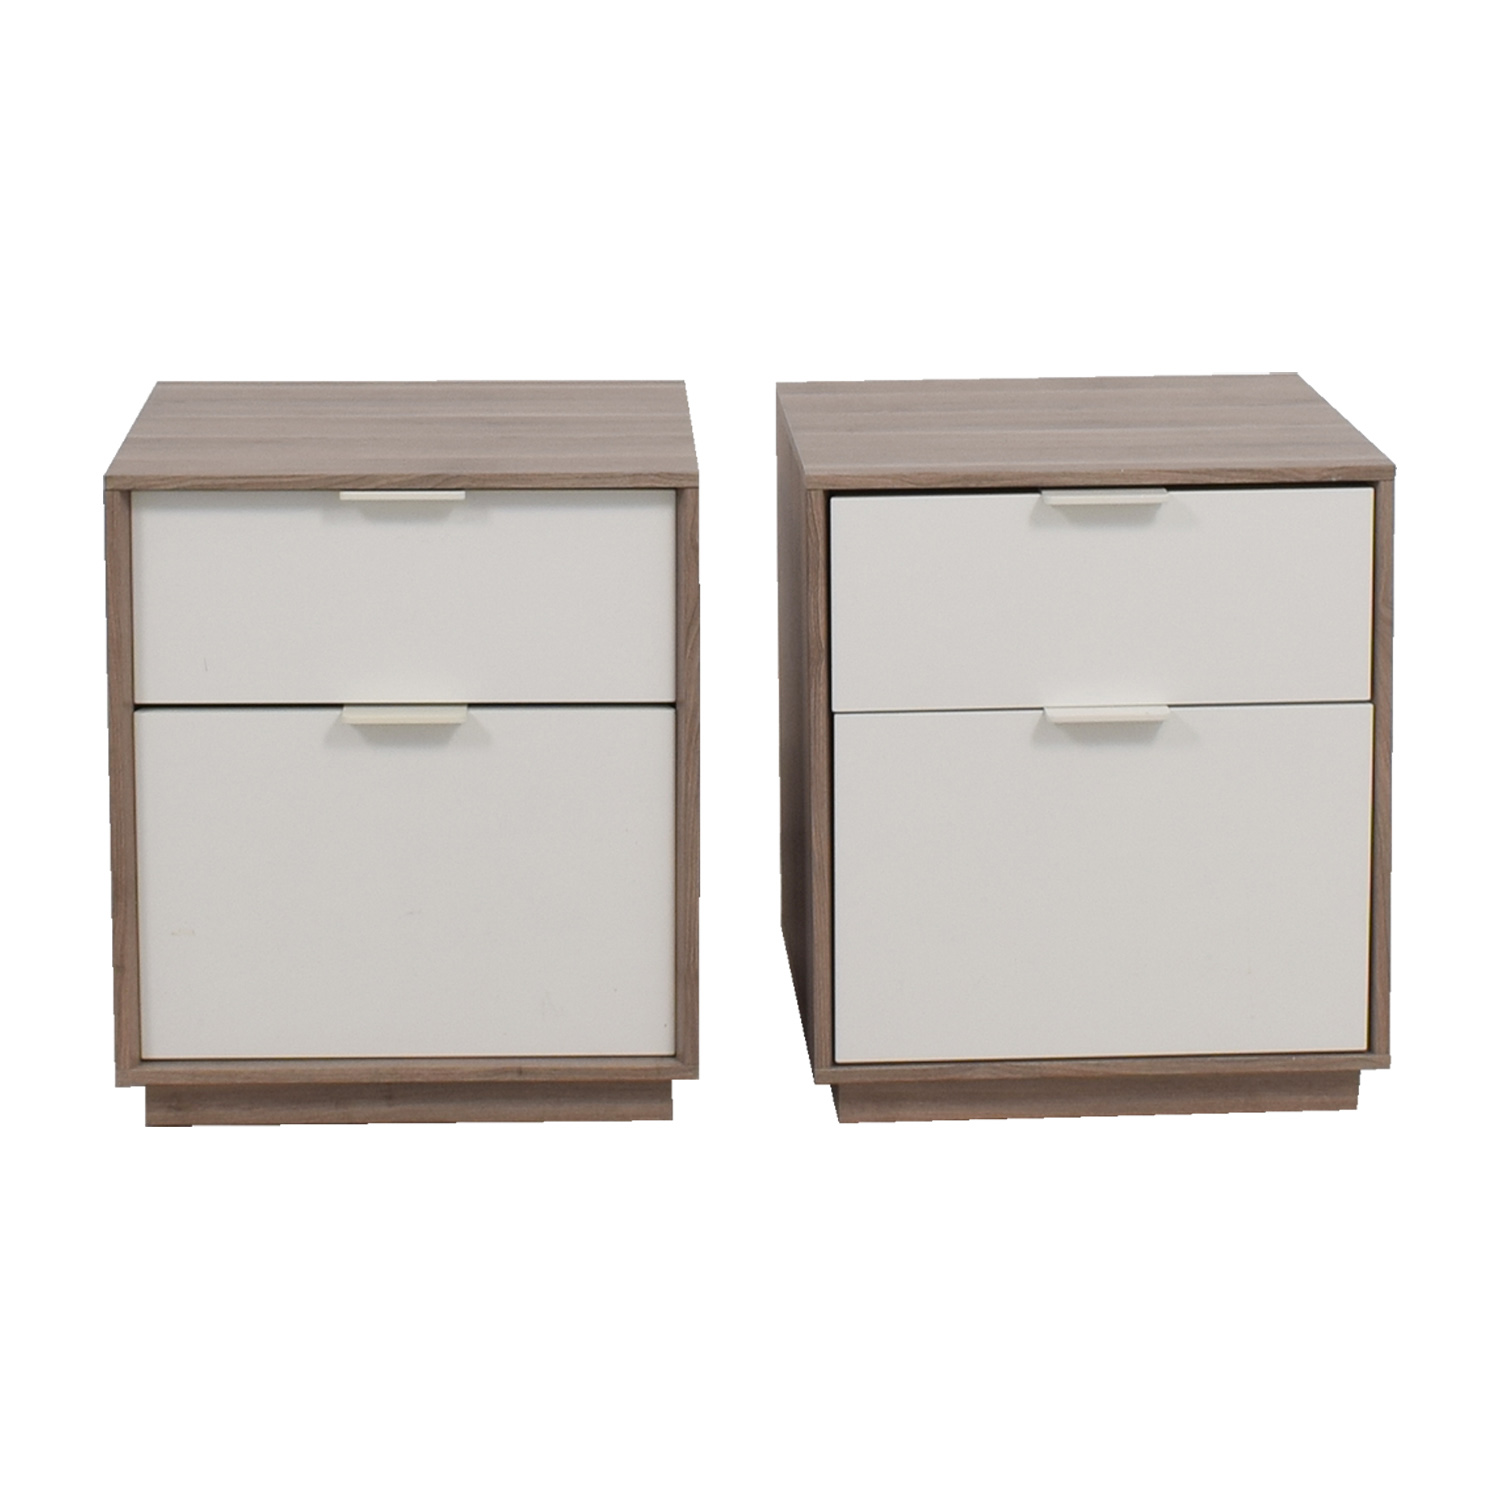 Grey and White Two-Drawer Nightstands / Tables